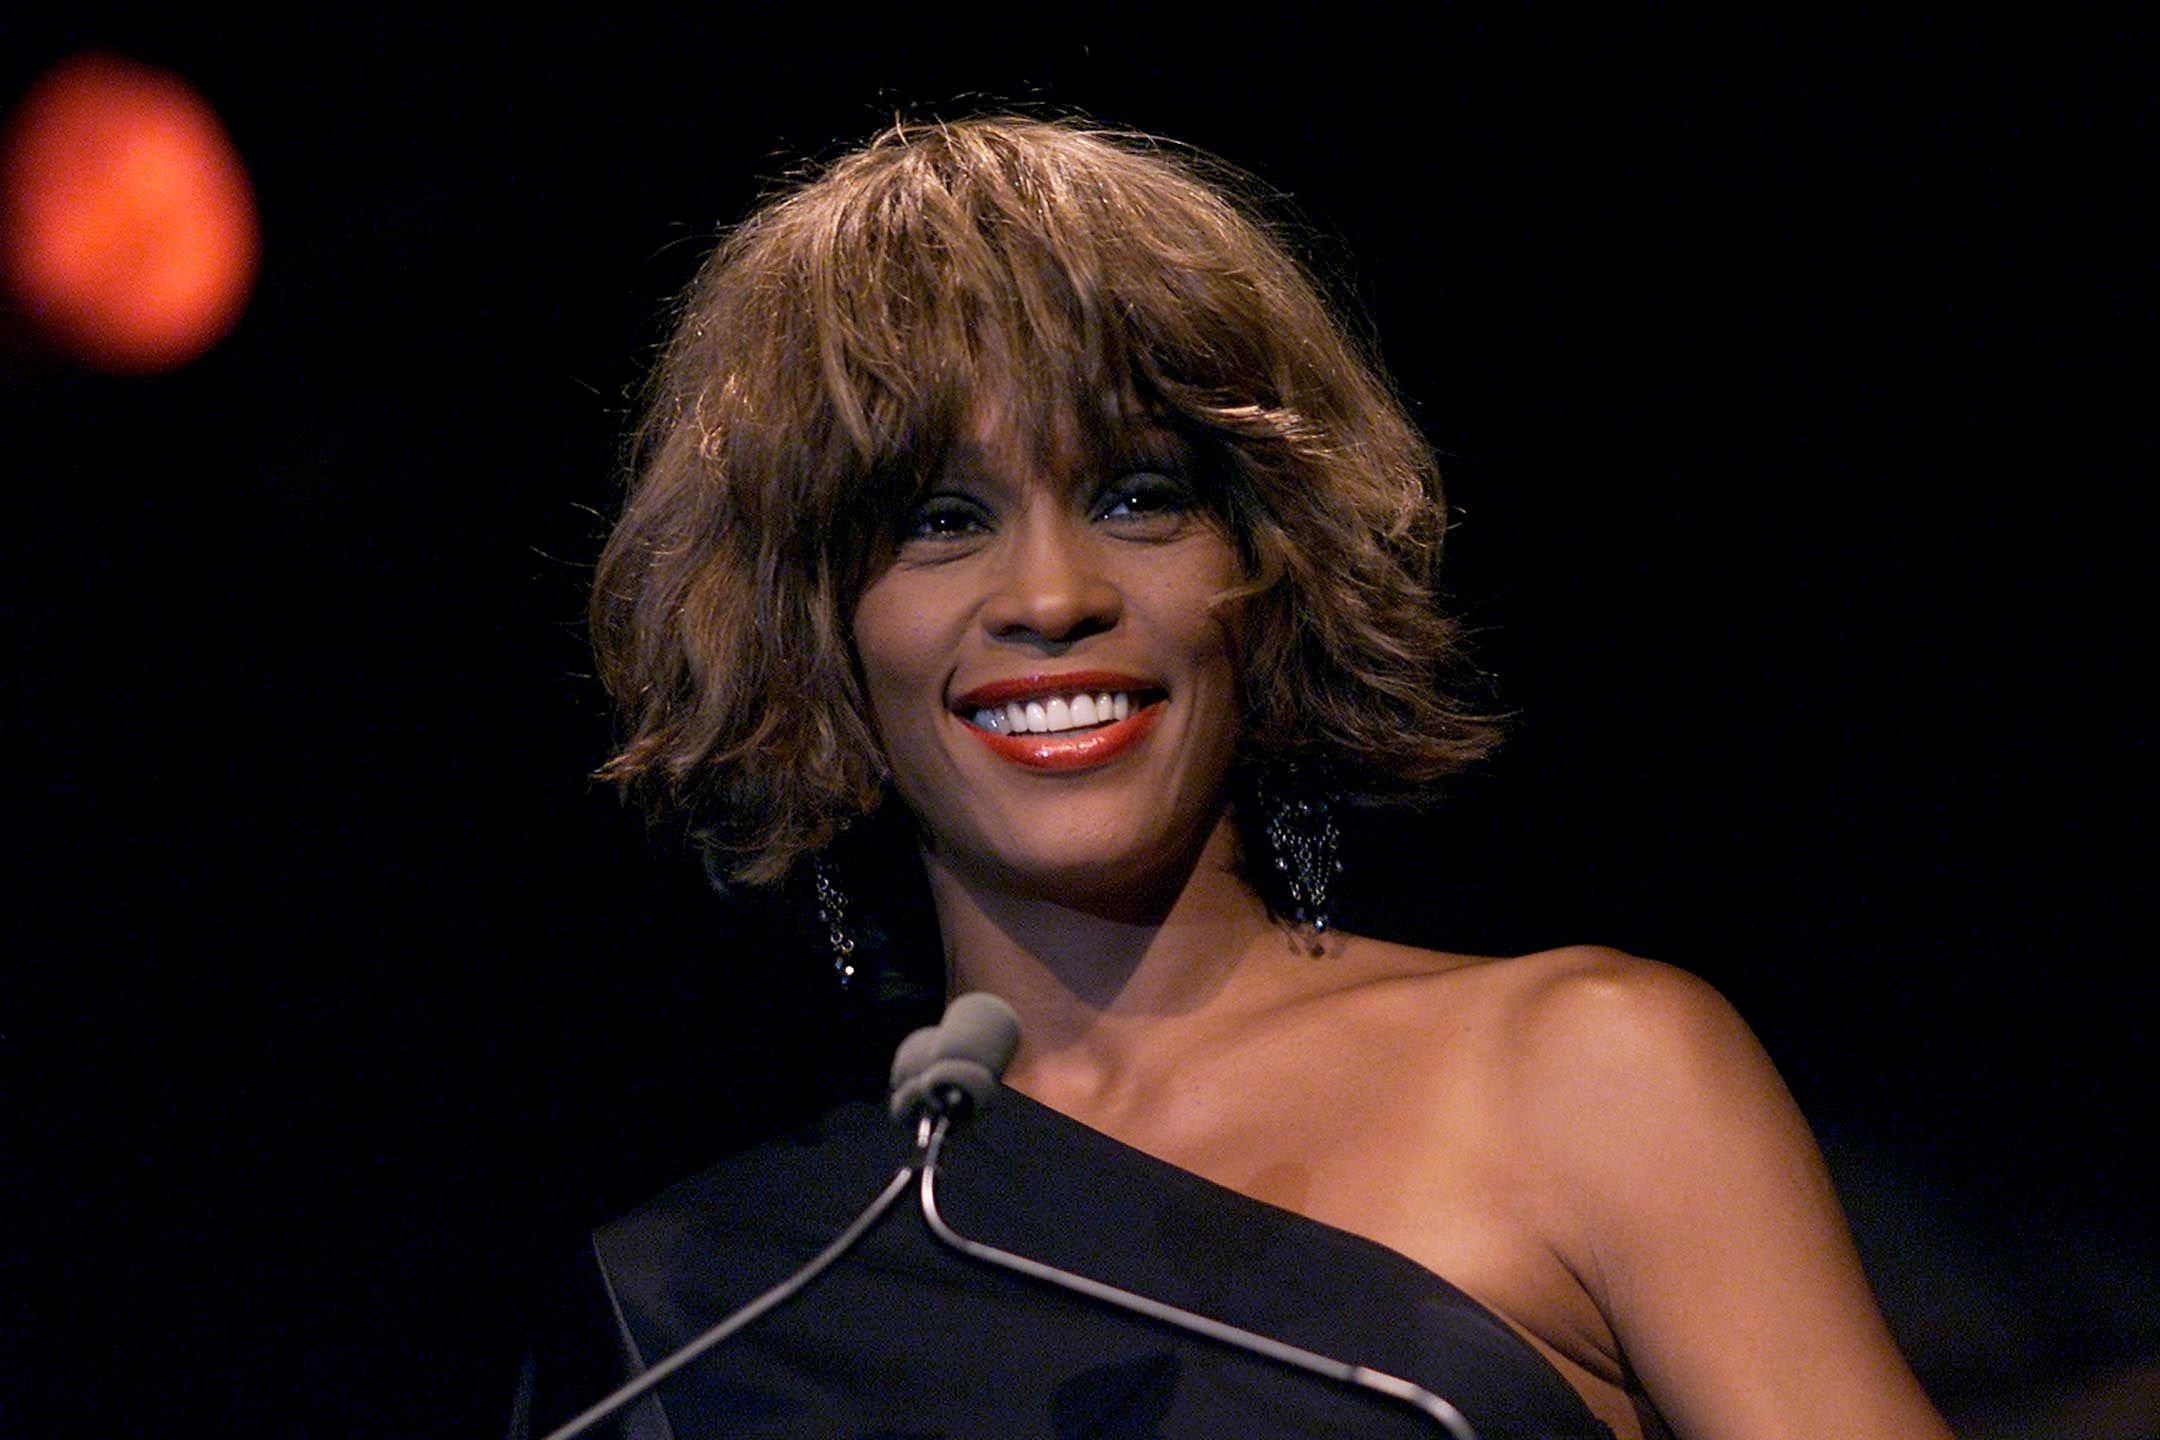 Whitney Houston at the Songwriters Hall of Fame 32nd Annual Awards in New York City in 2001 | Source: Getty Images